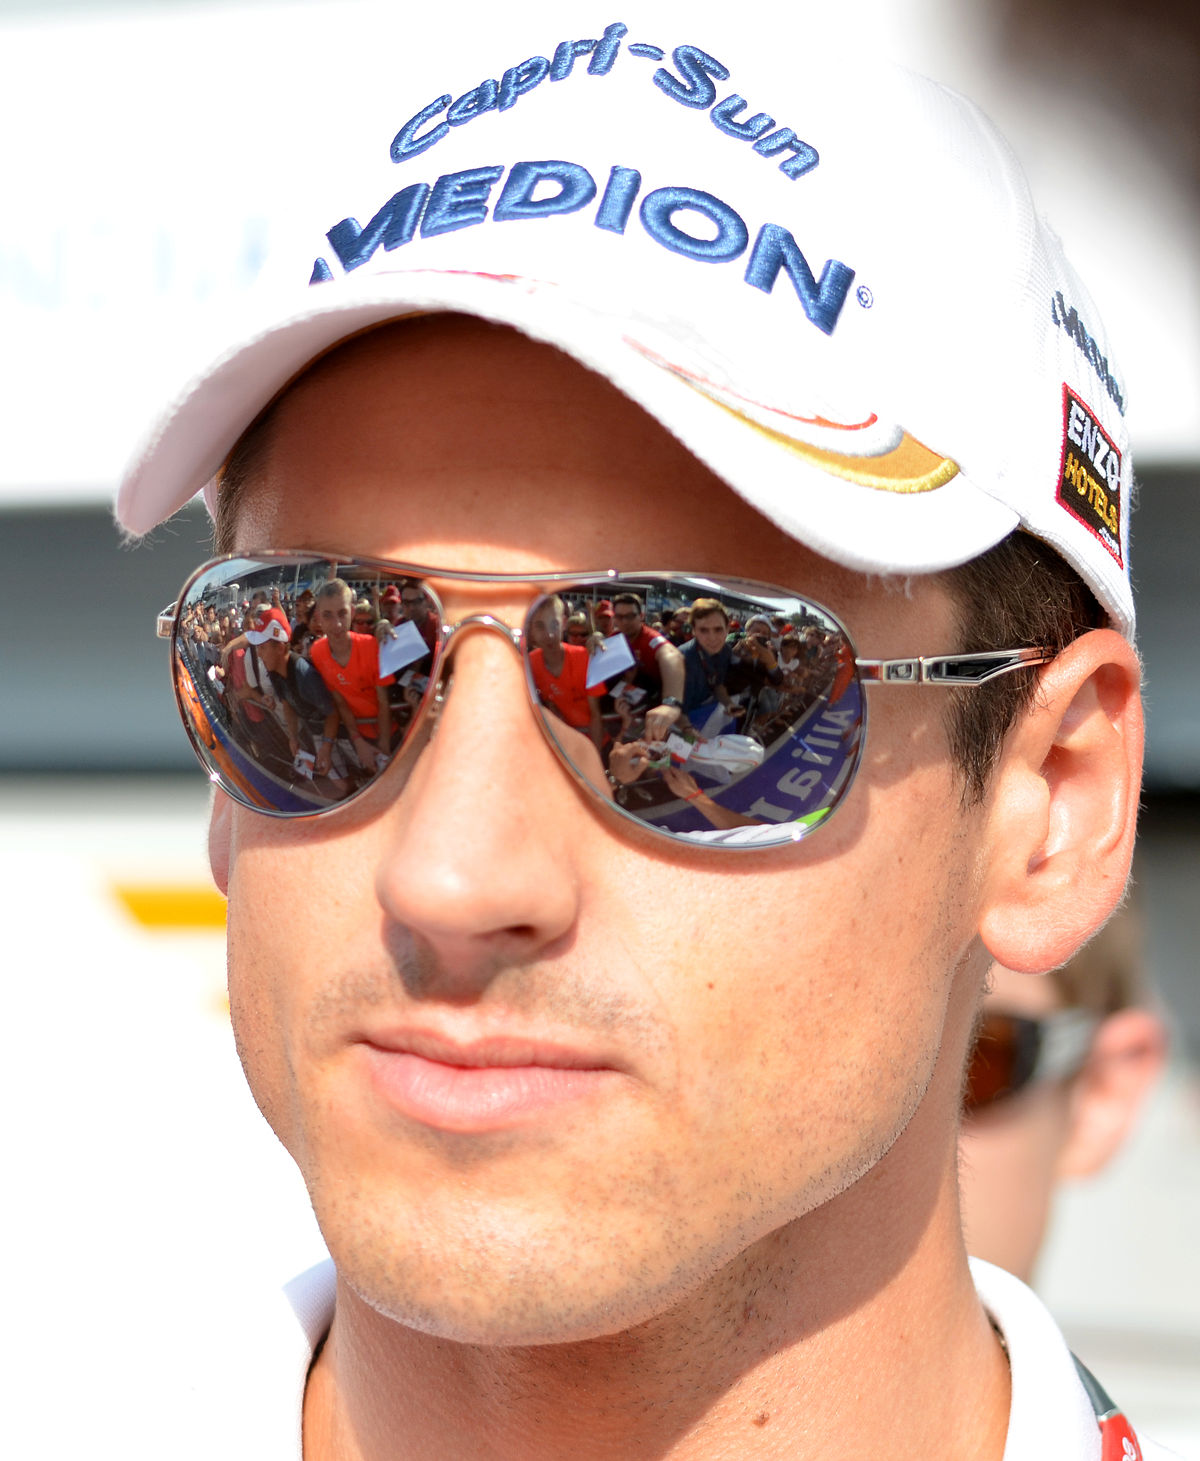 Adrian Sutil Wikipedia